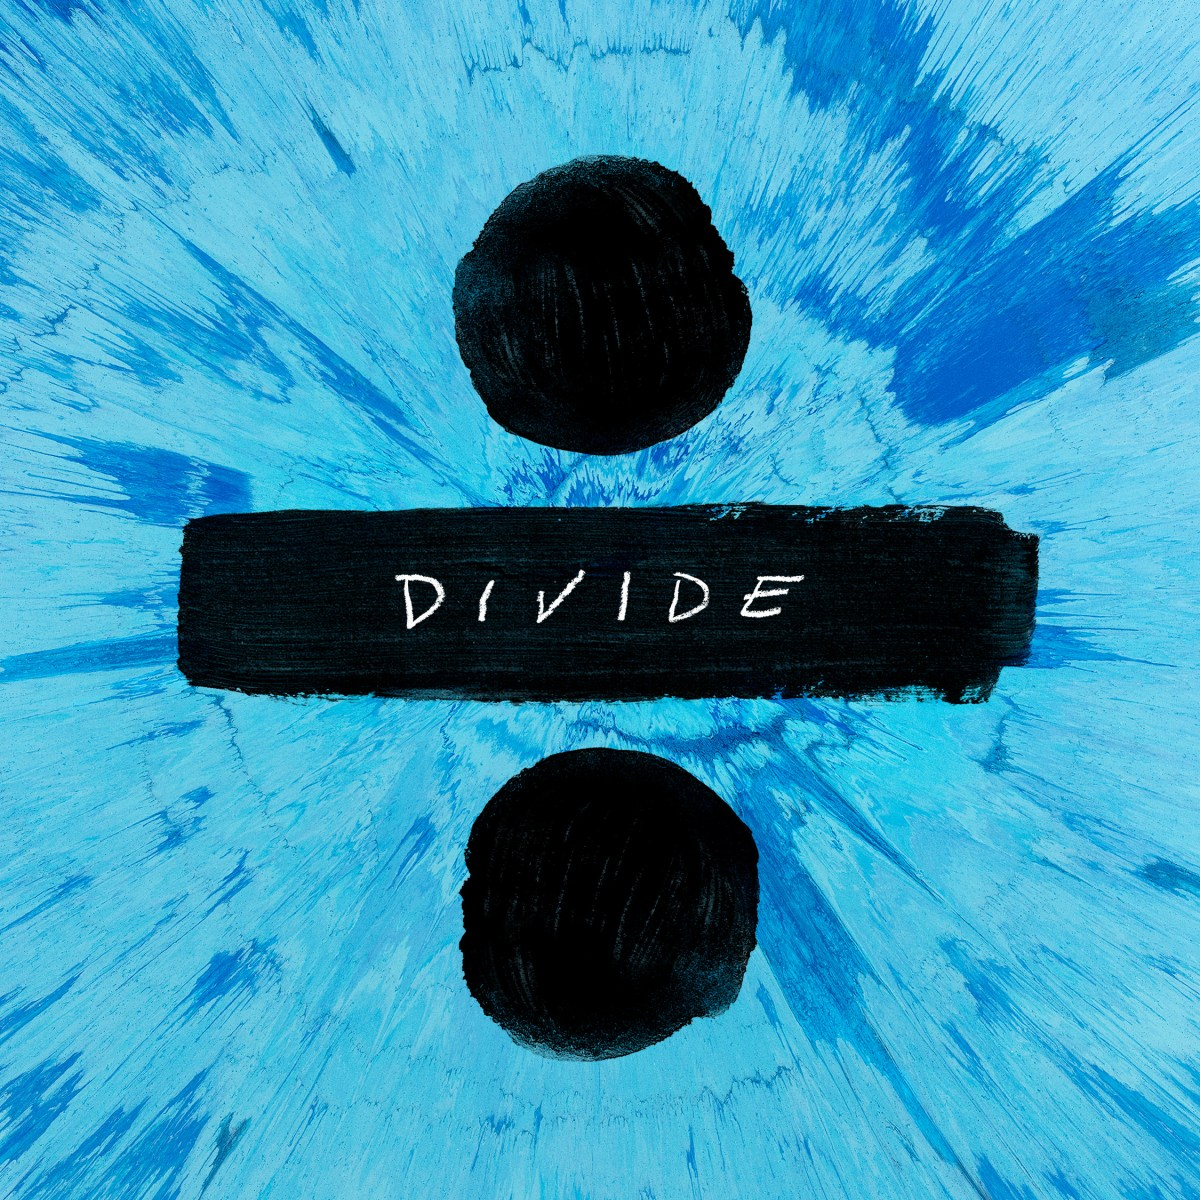 Ed Sheeran album tells a unique story